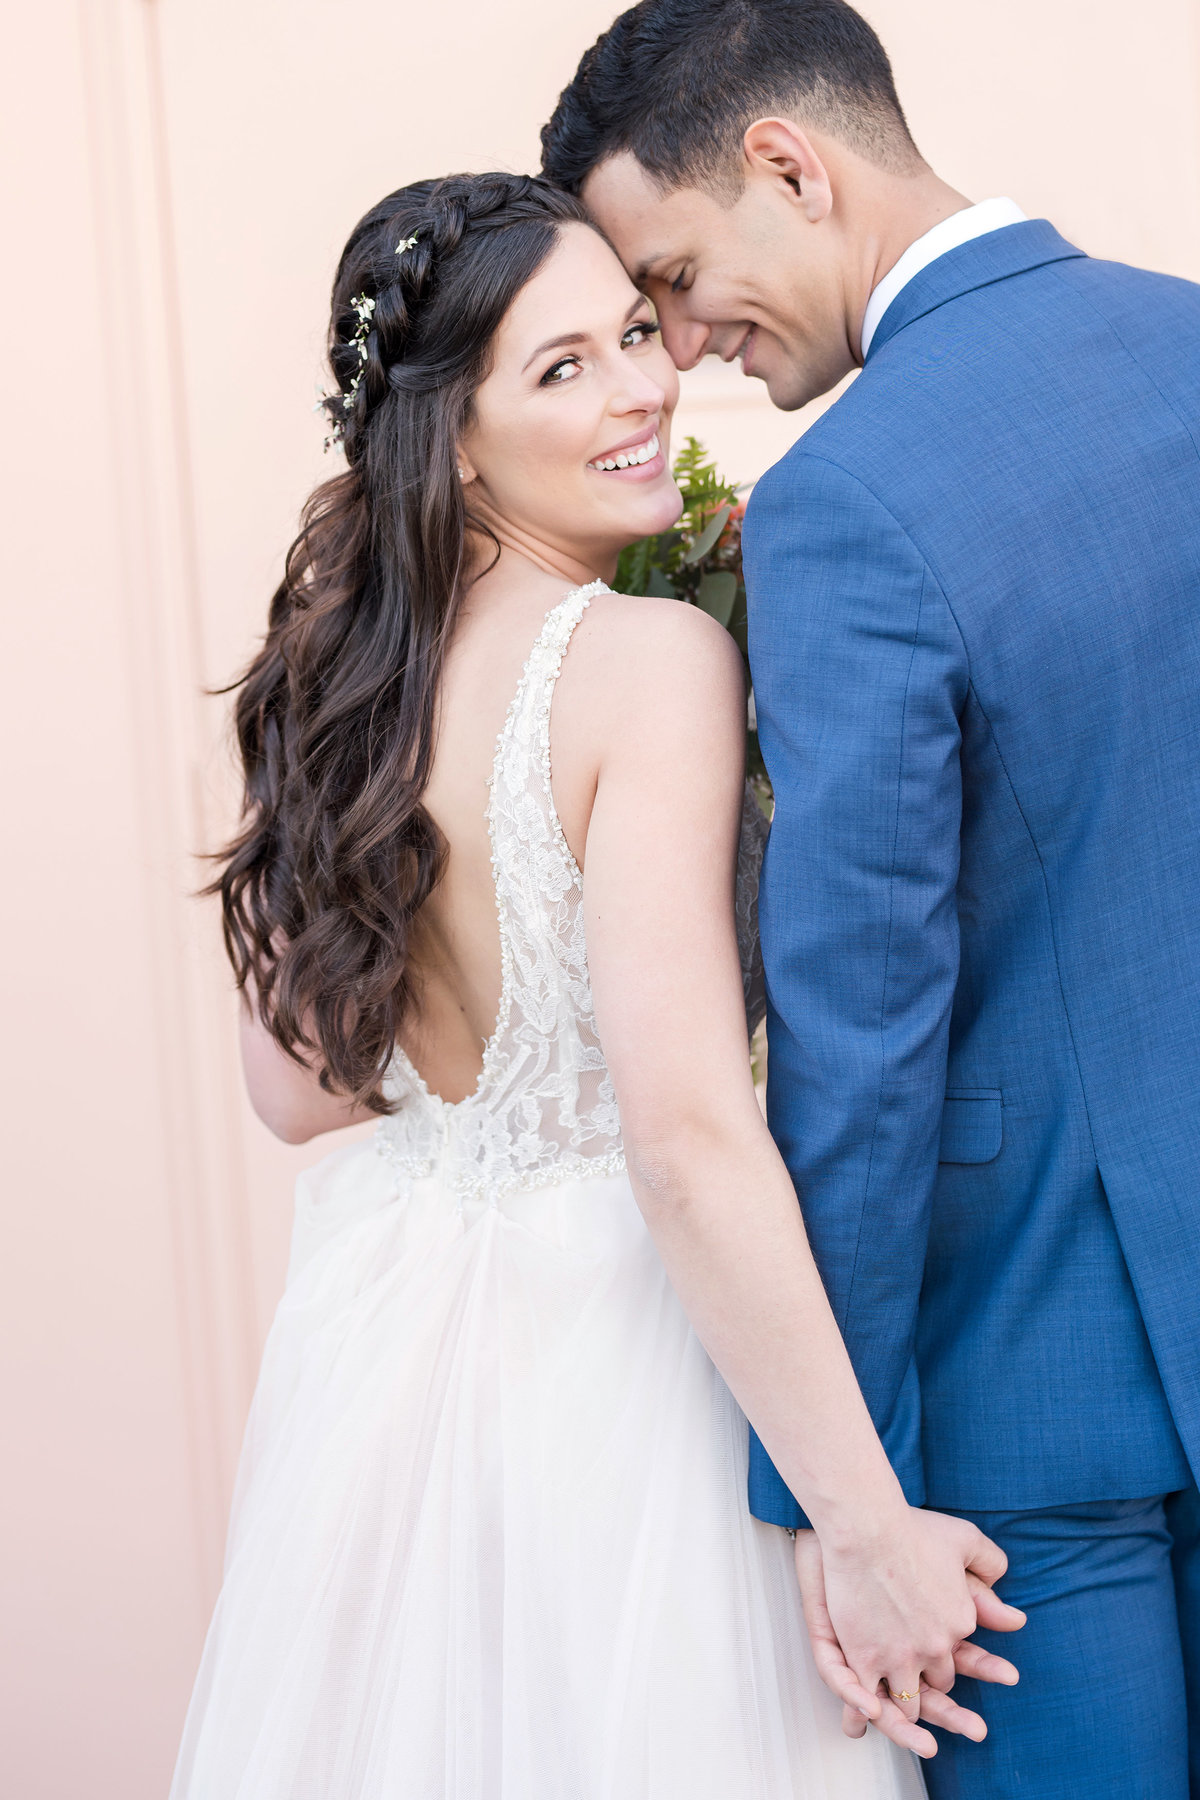 Bride and groom hold hands in front of pink wall and smile looking back over shoulder